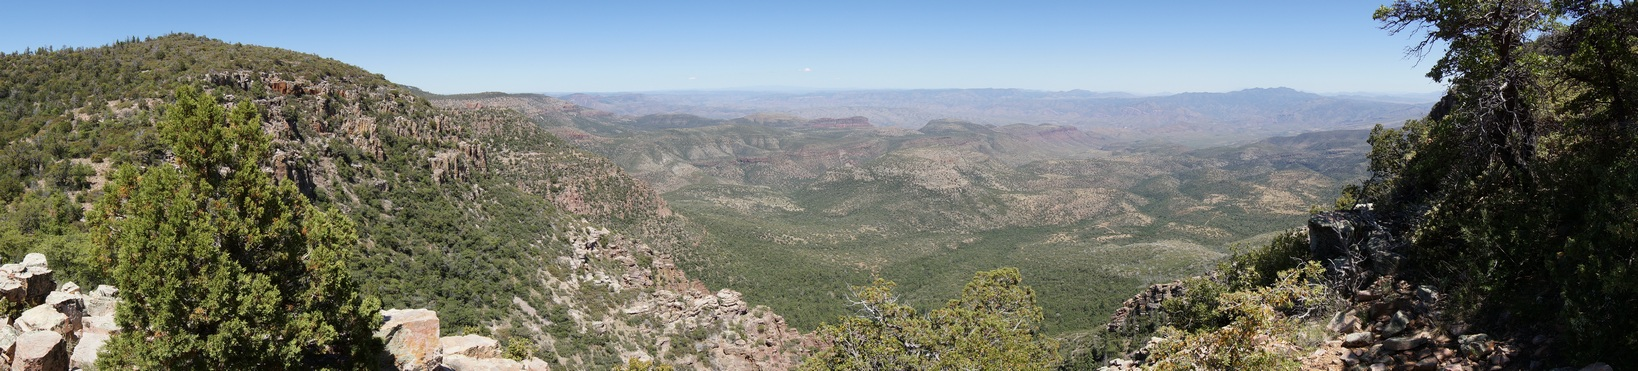 panoramic photo of the sierra ancha wilderness from zimmerman peak